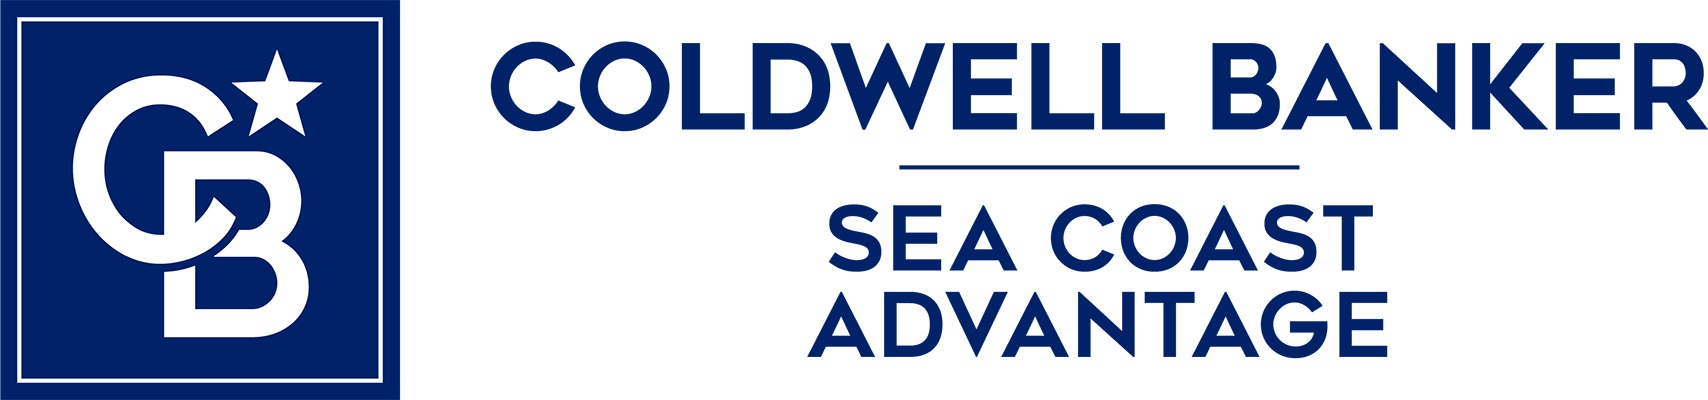 Alan Vanvliet - Coldwell Banker Sea Coast Advantage Realty